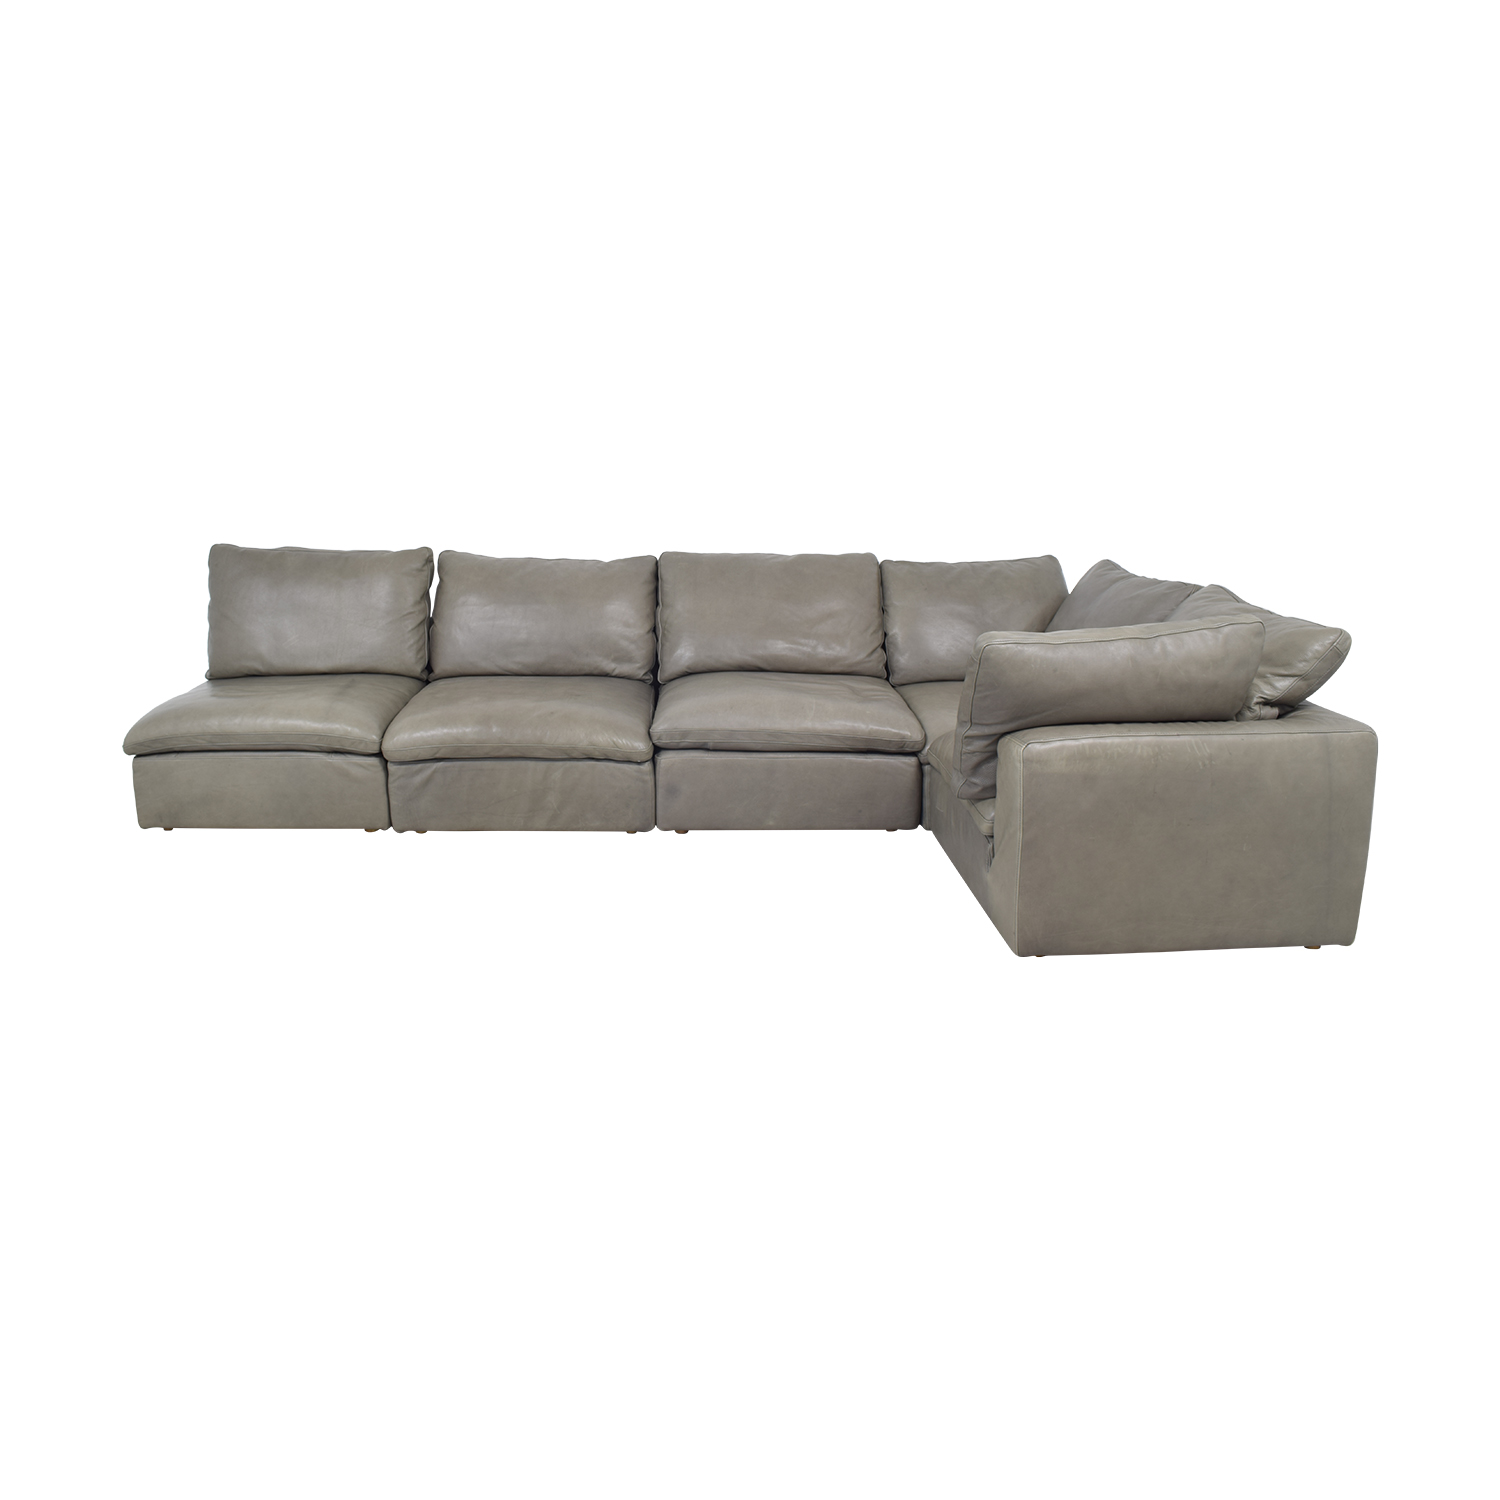 Restoration Hardware Restoration Hardware Cloud Modular Sectional Sofa price